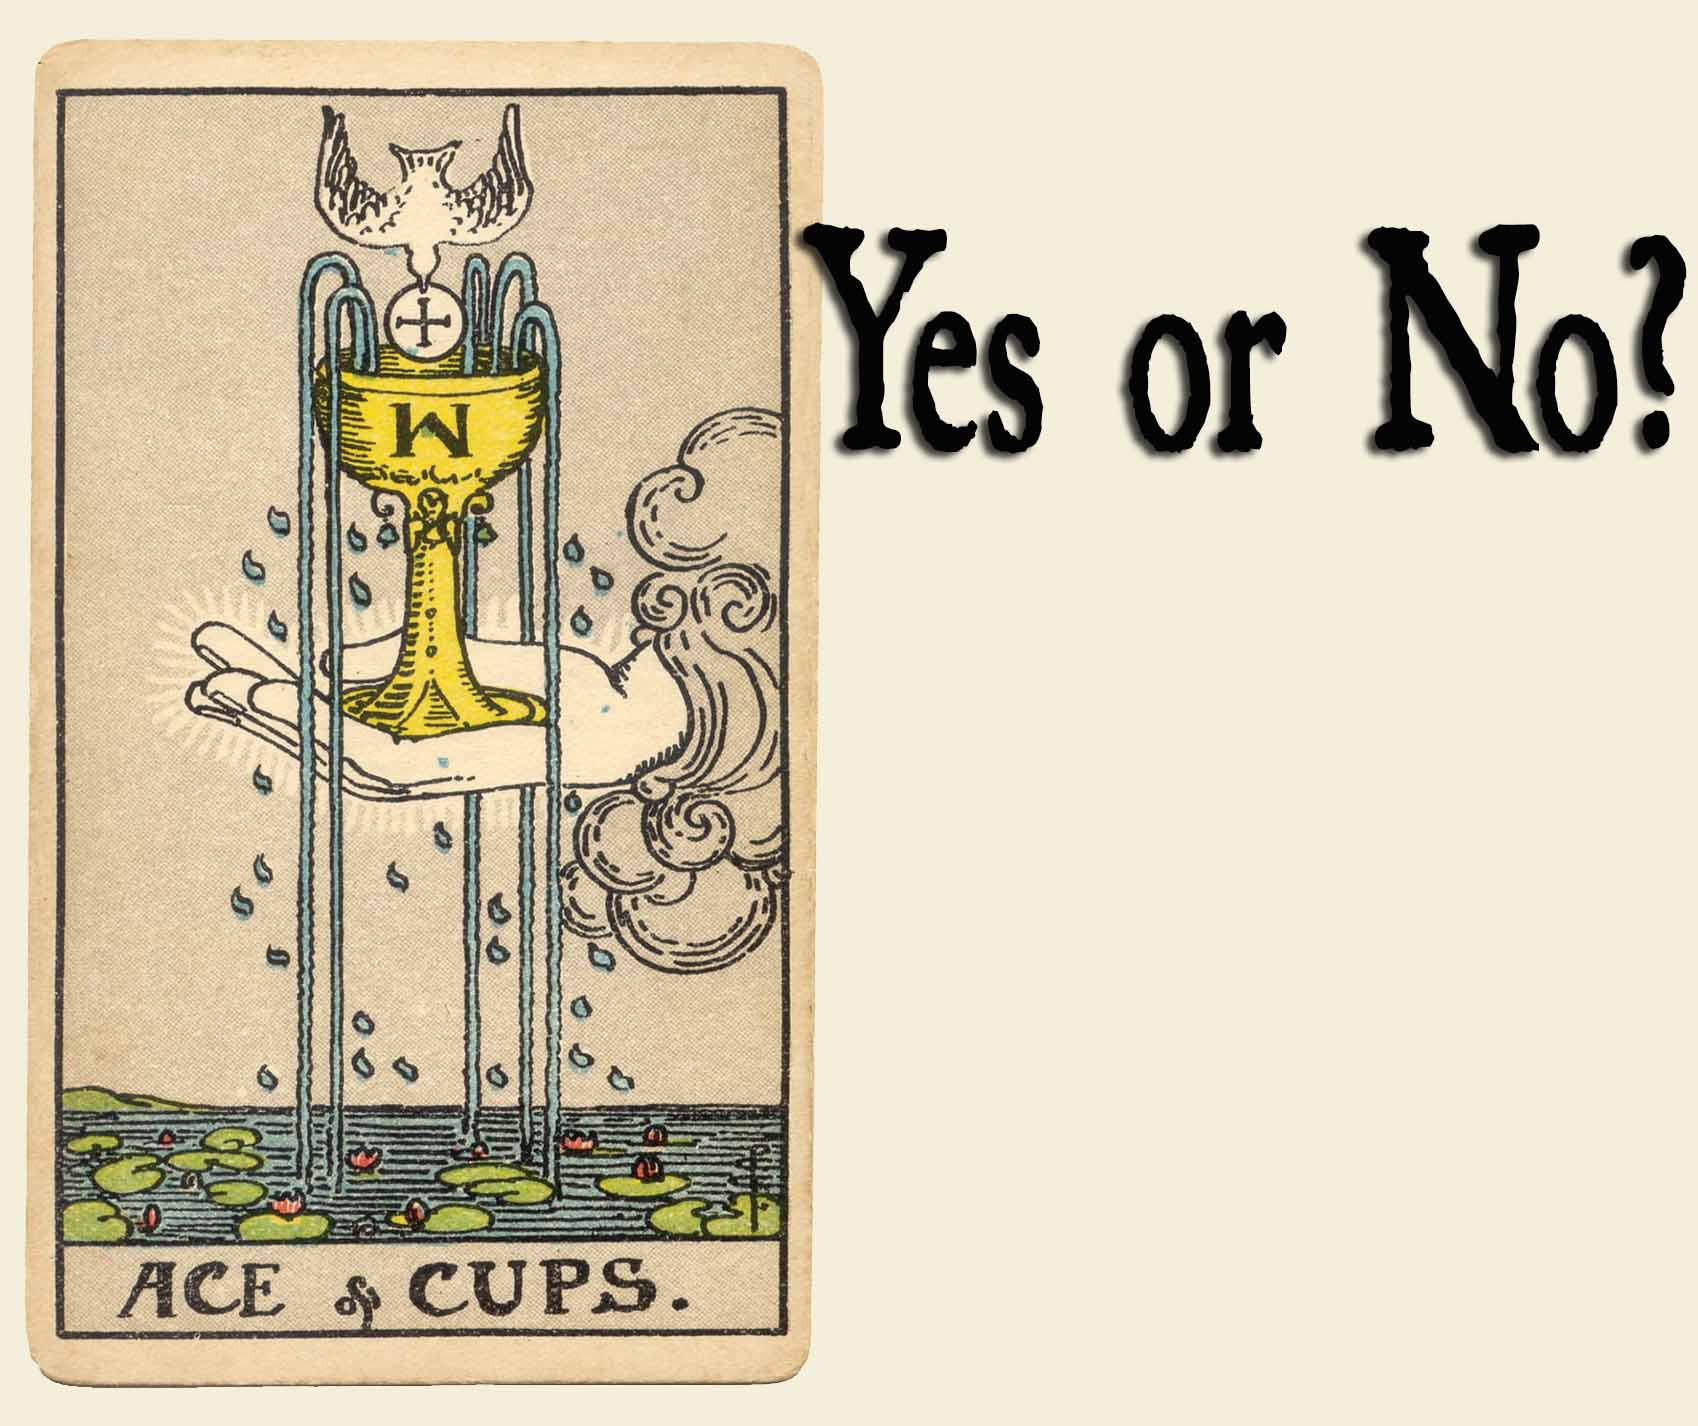 Ace of Cups – Yes or No?